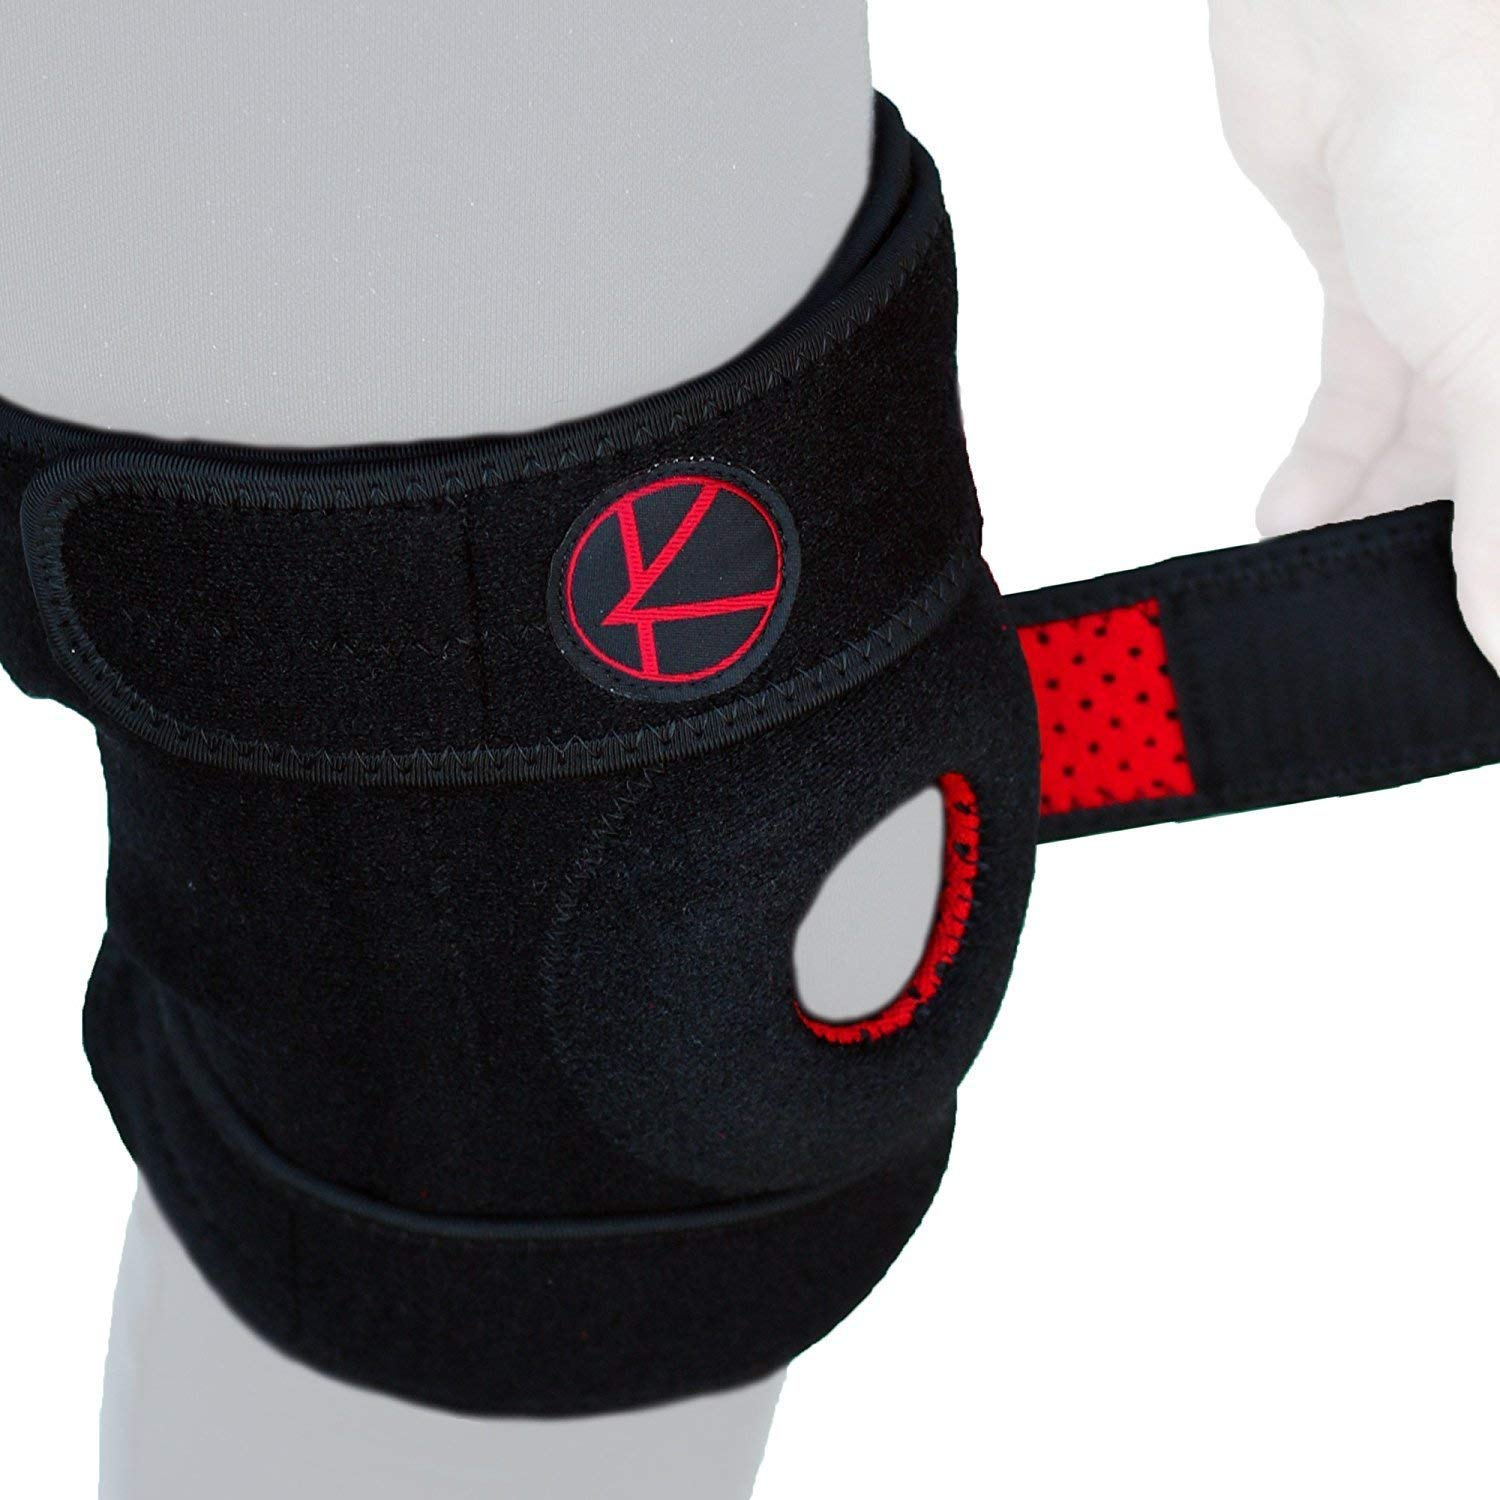 Adjustable Knee Brace Support Wrap Size 3 Black by K A R M